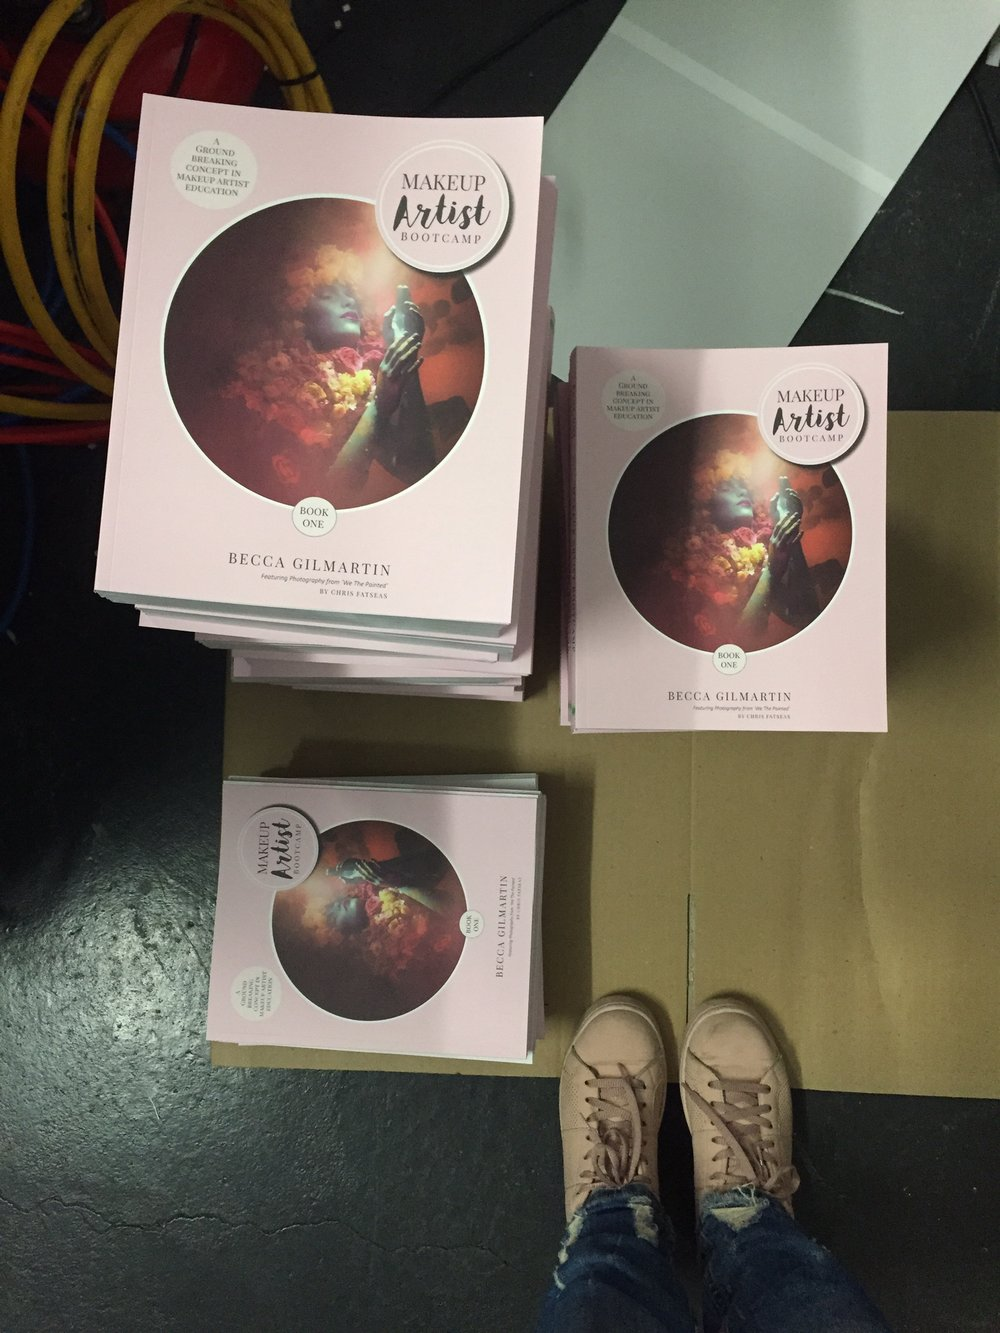 They were real! I had done it! Every one of these books were in the hands of a Makeup Artist about to kick some ass of their own. I had the shoes to match.